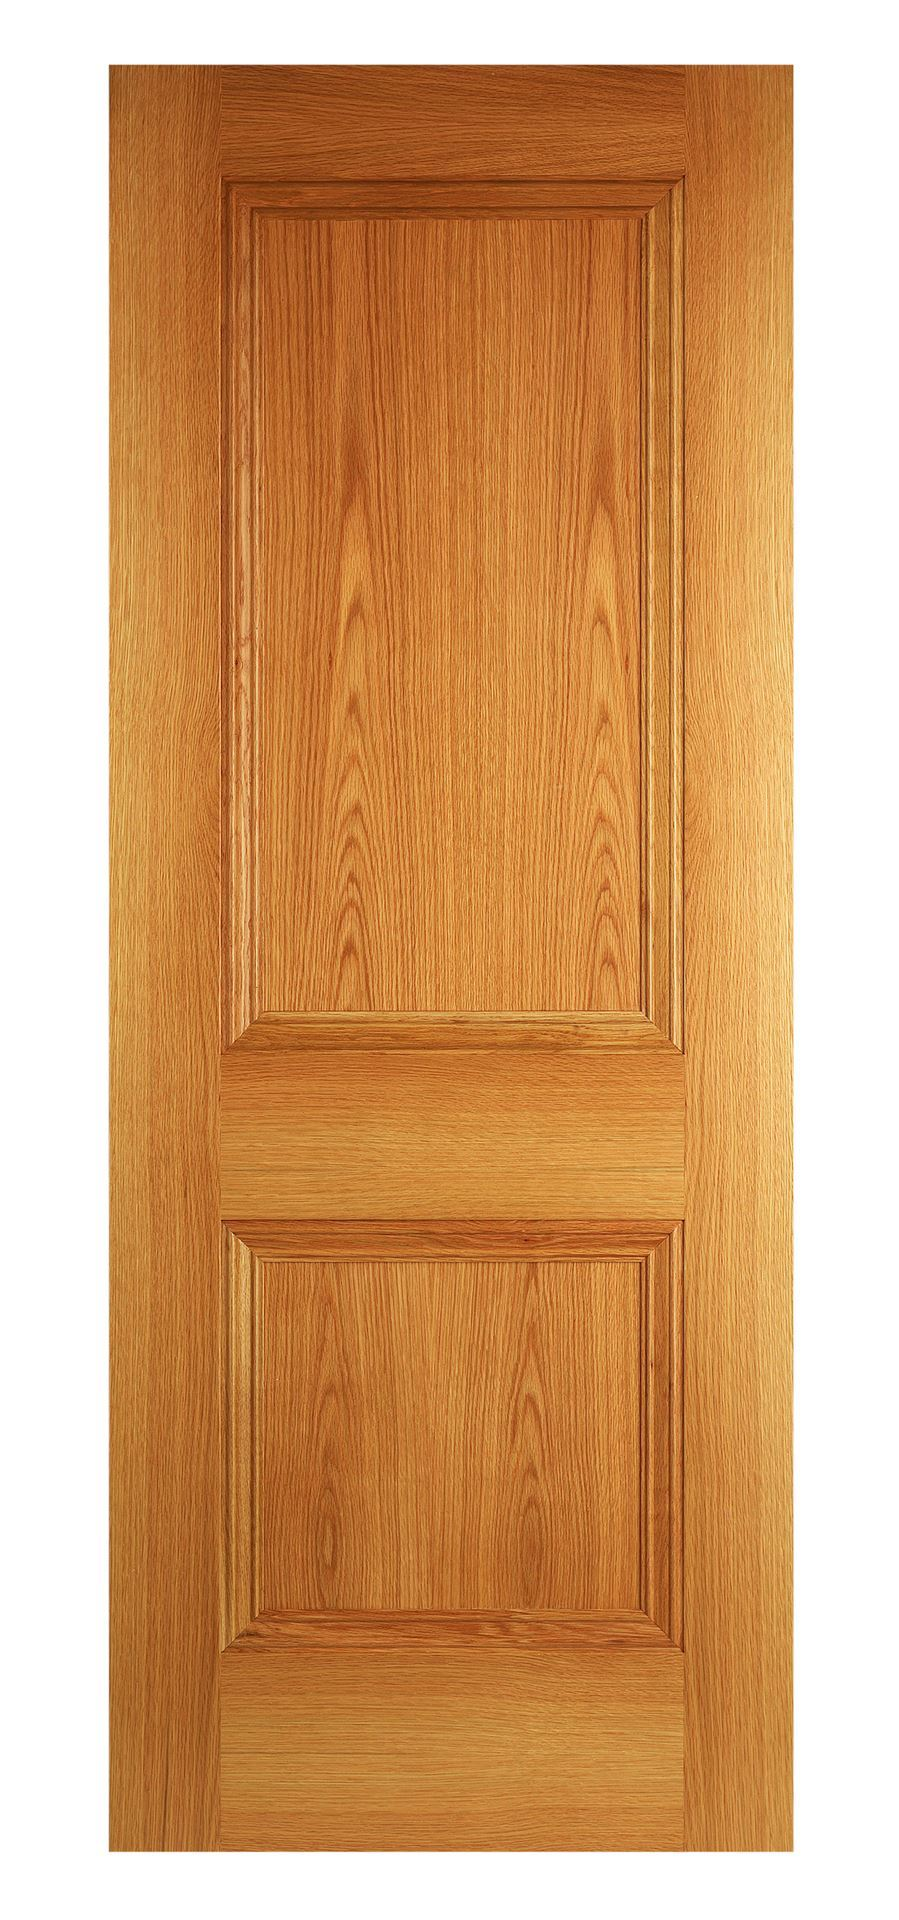 Wentworth 2 Panel Oak Fd30 Bespoke Fire Door Internal